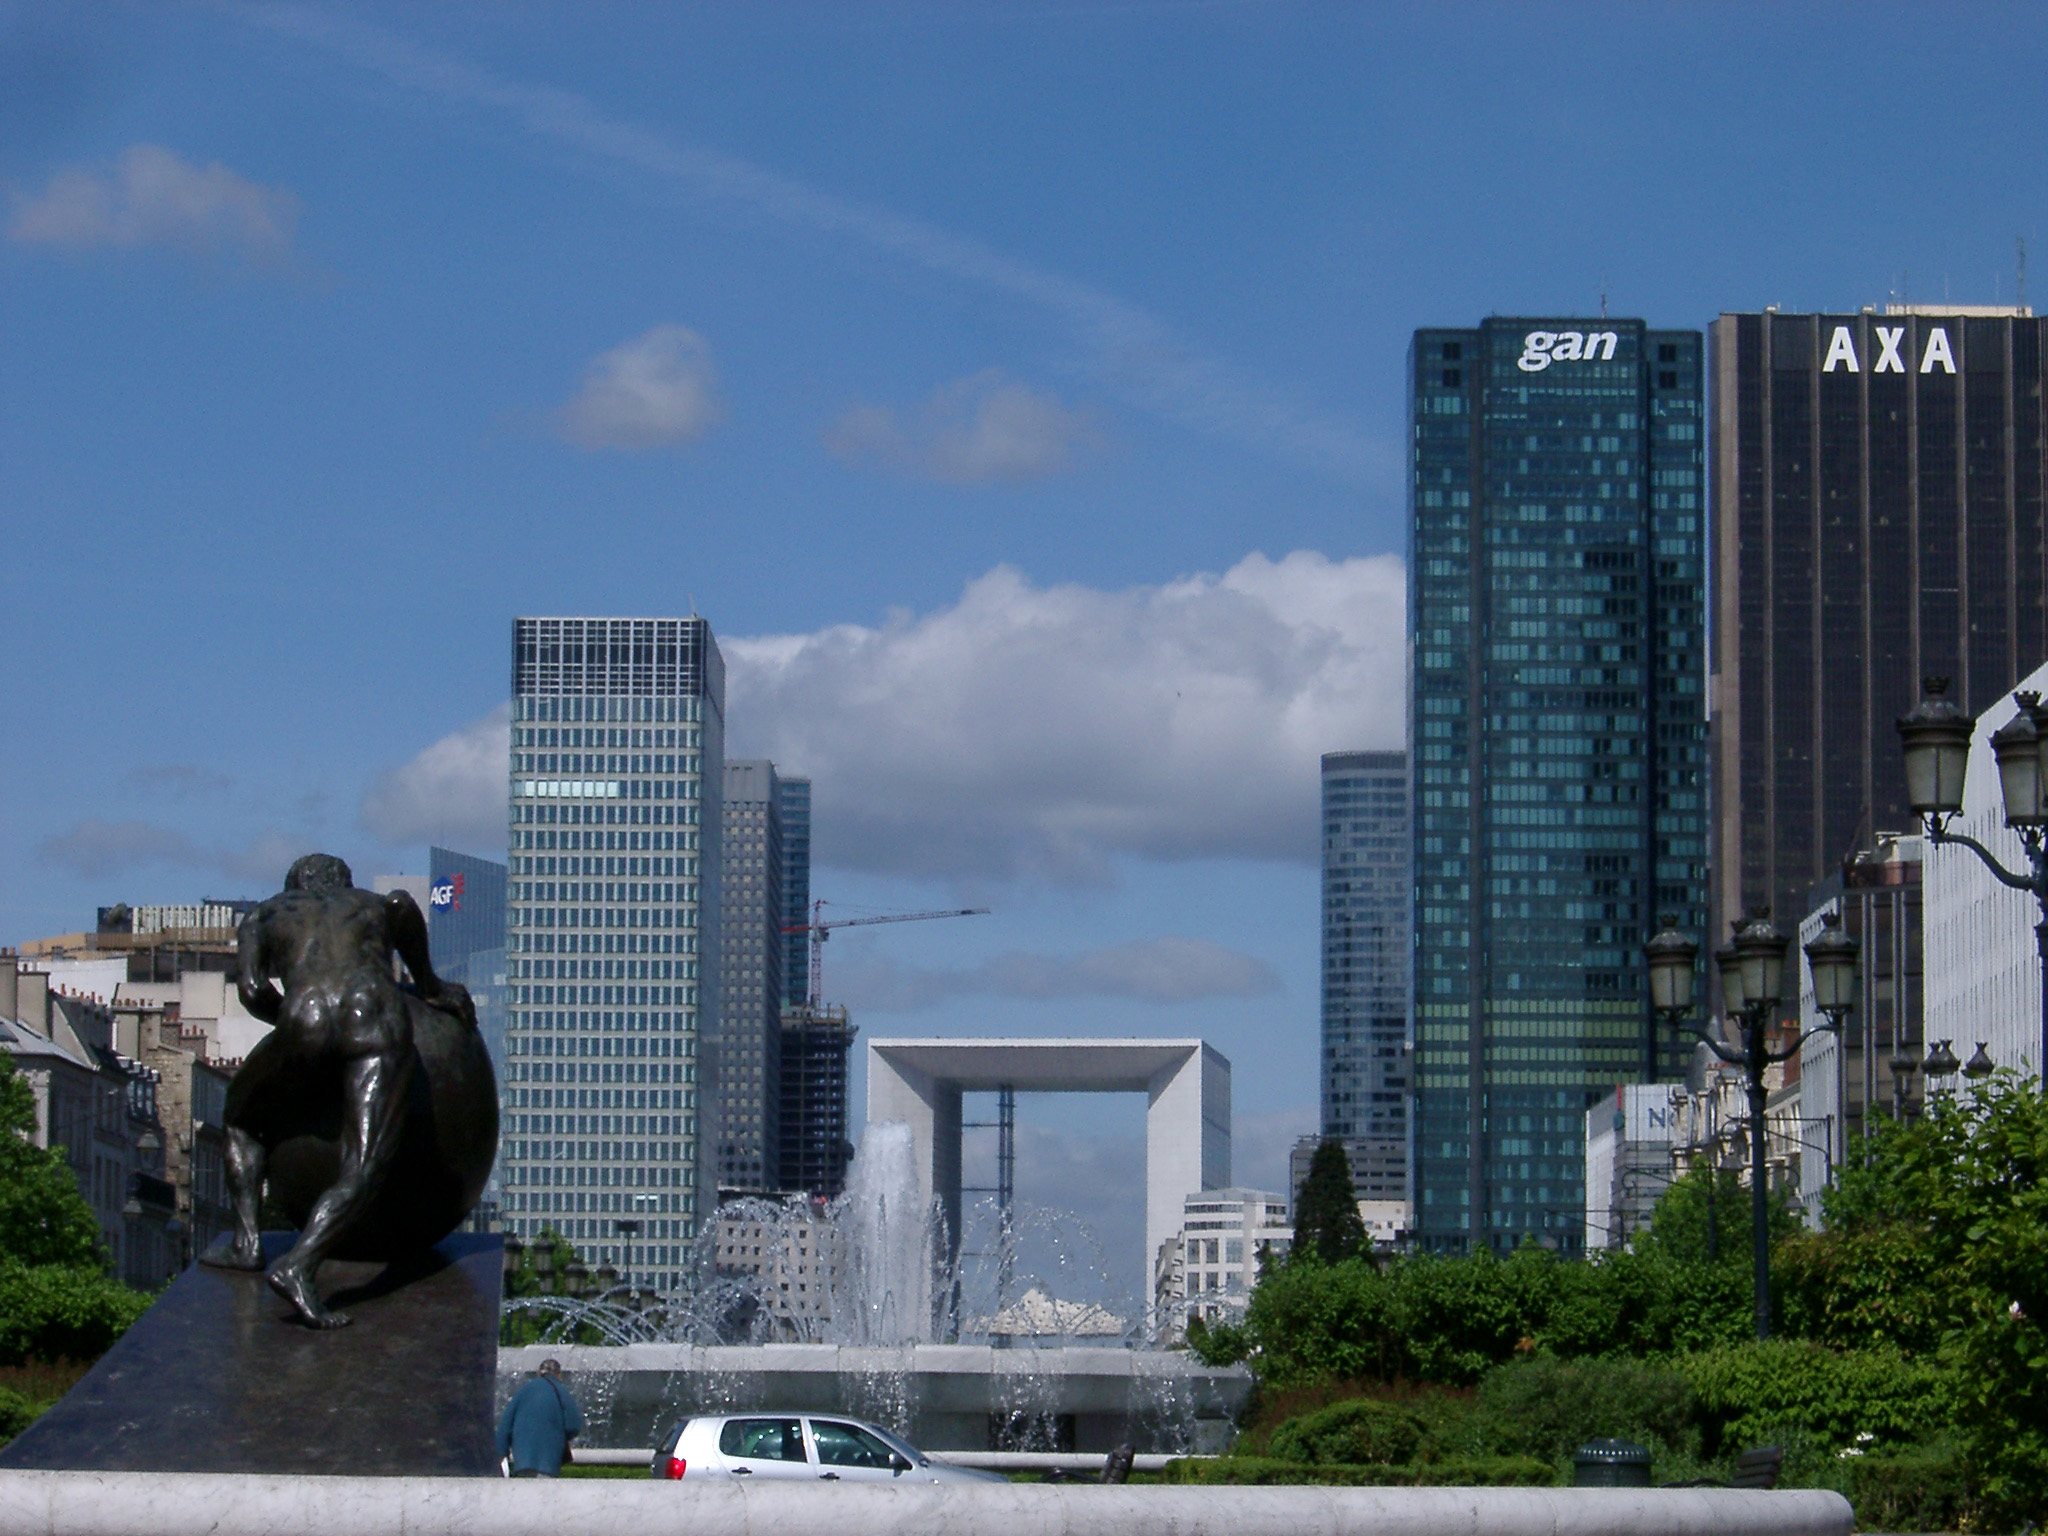 Various Architectural Building Structures at La Defense Isolated on Light Blue Sky Background.